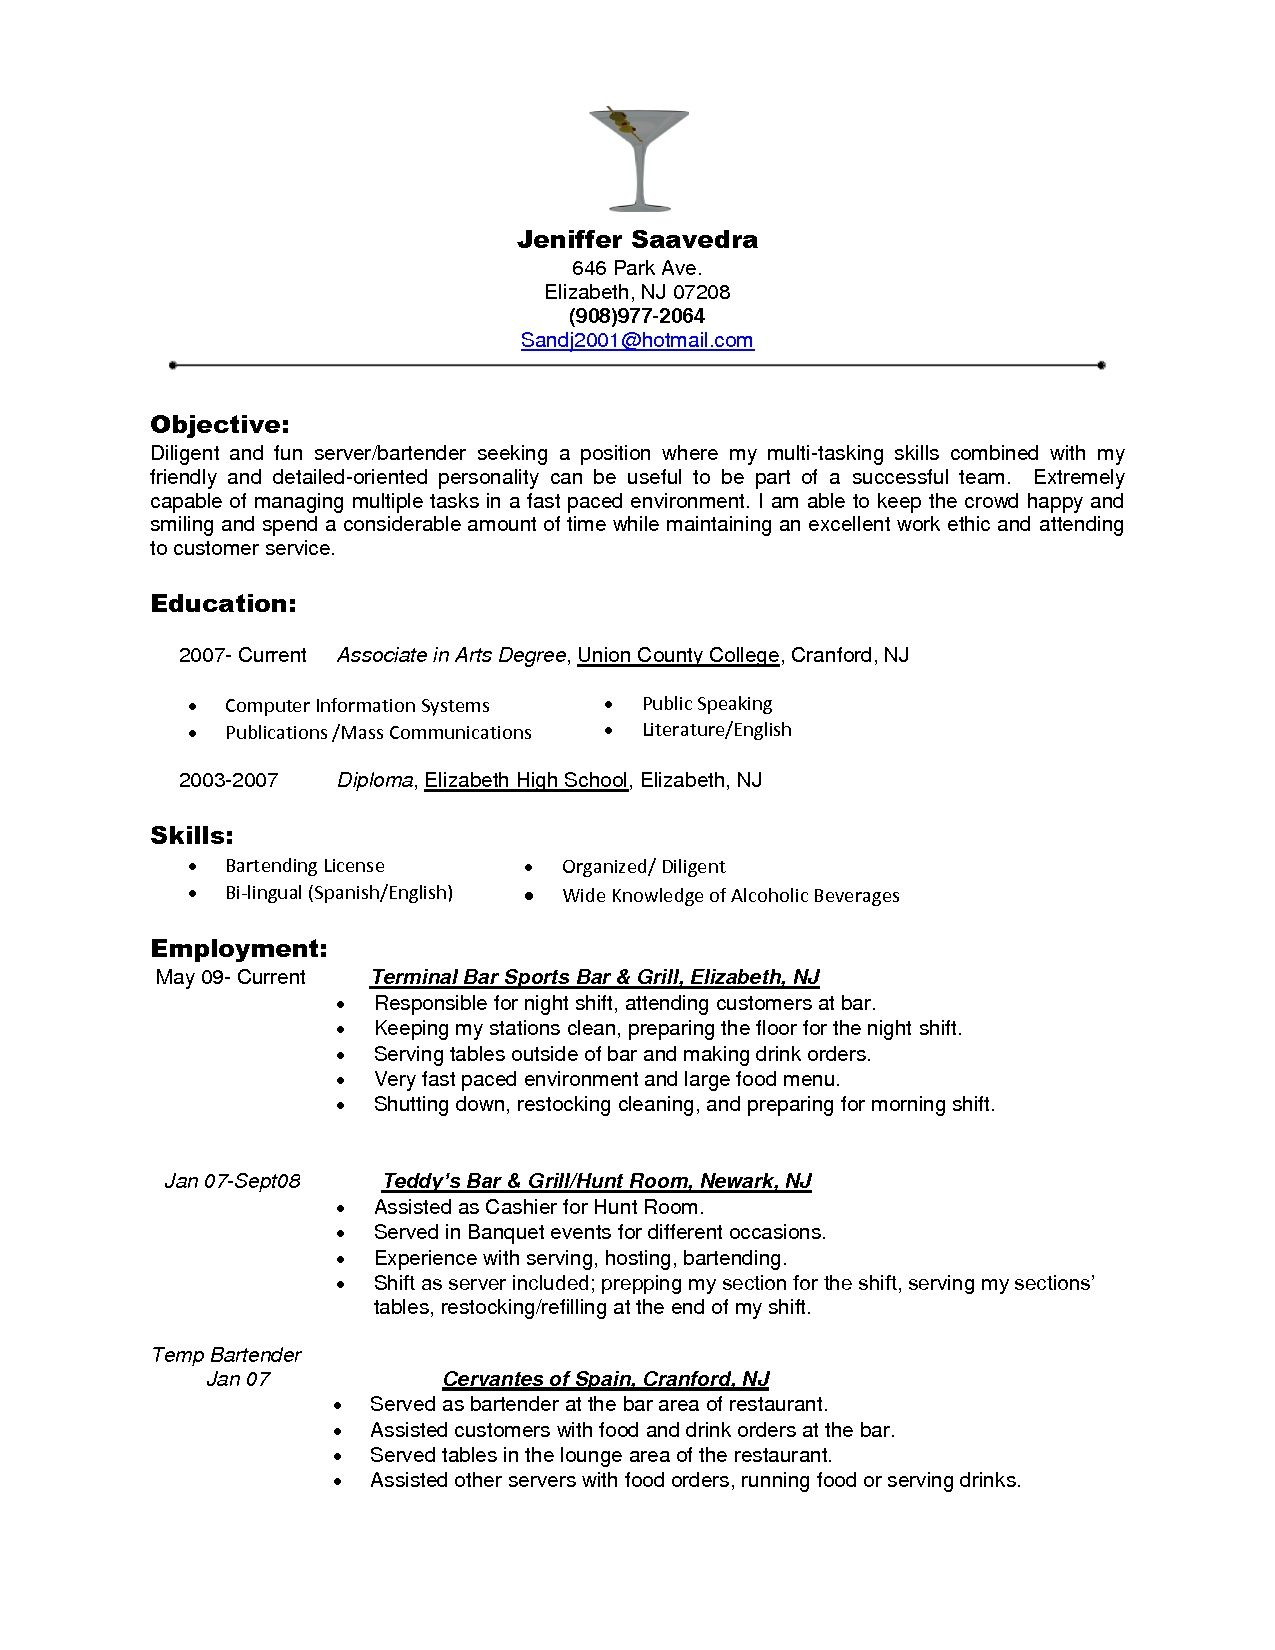 good resume objective examples of lt a href quot http helper